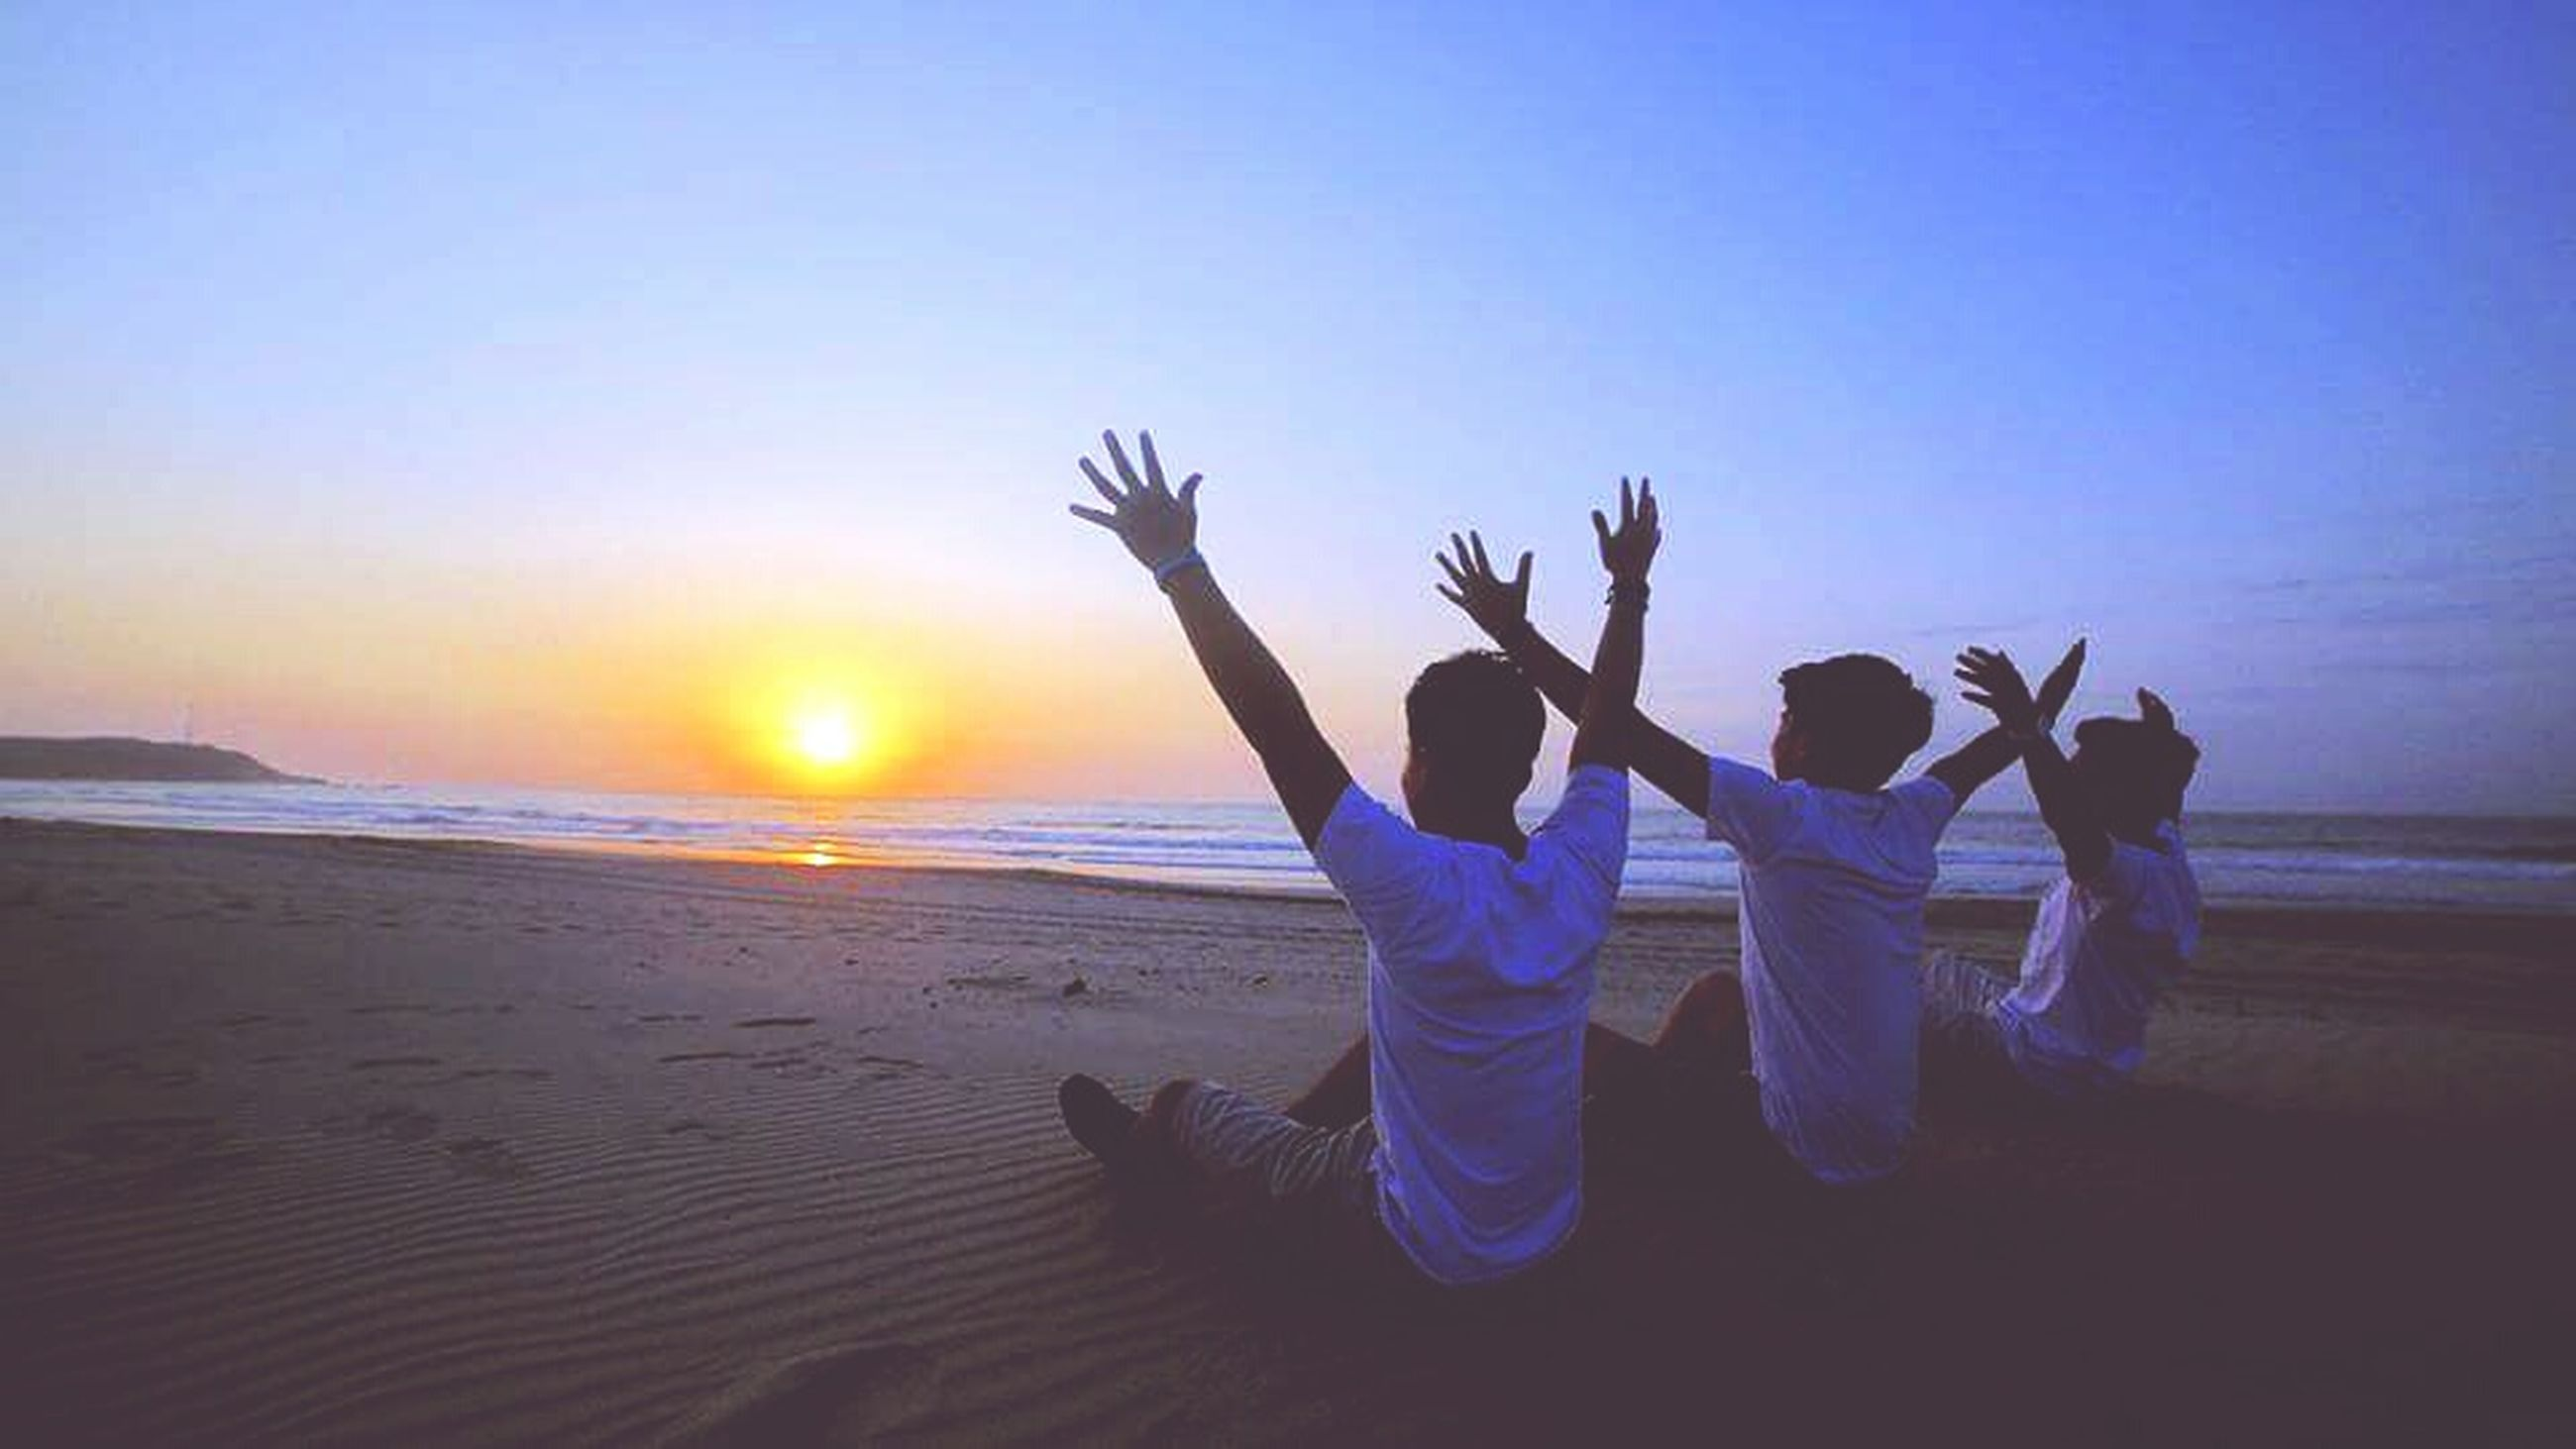 beach, sand, sea, sunset, real people, arms raised, lifestyles, leisure activity, enjoyment, nature, water, men, sky, beauty in nature, togetherness, outdoors, women, horizon over water, night, people, adult